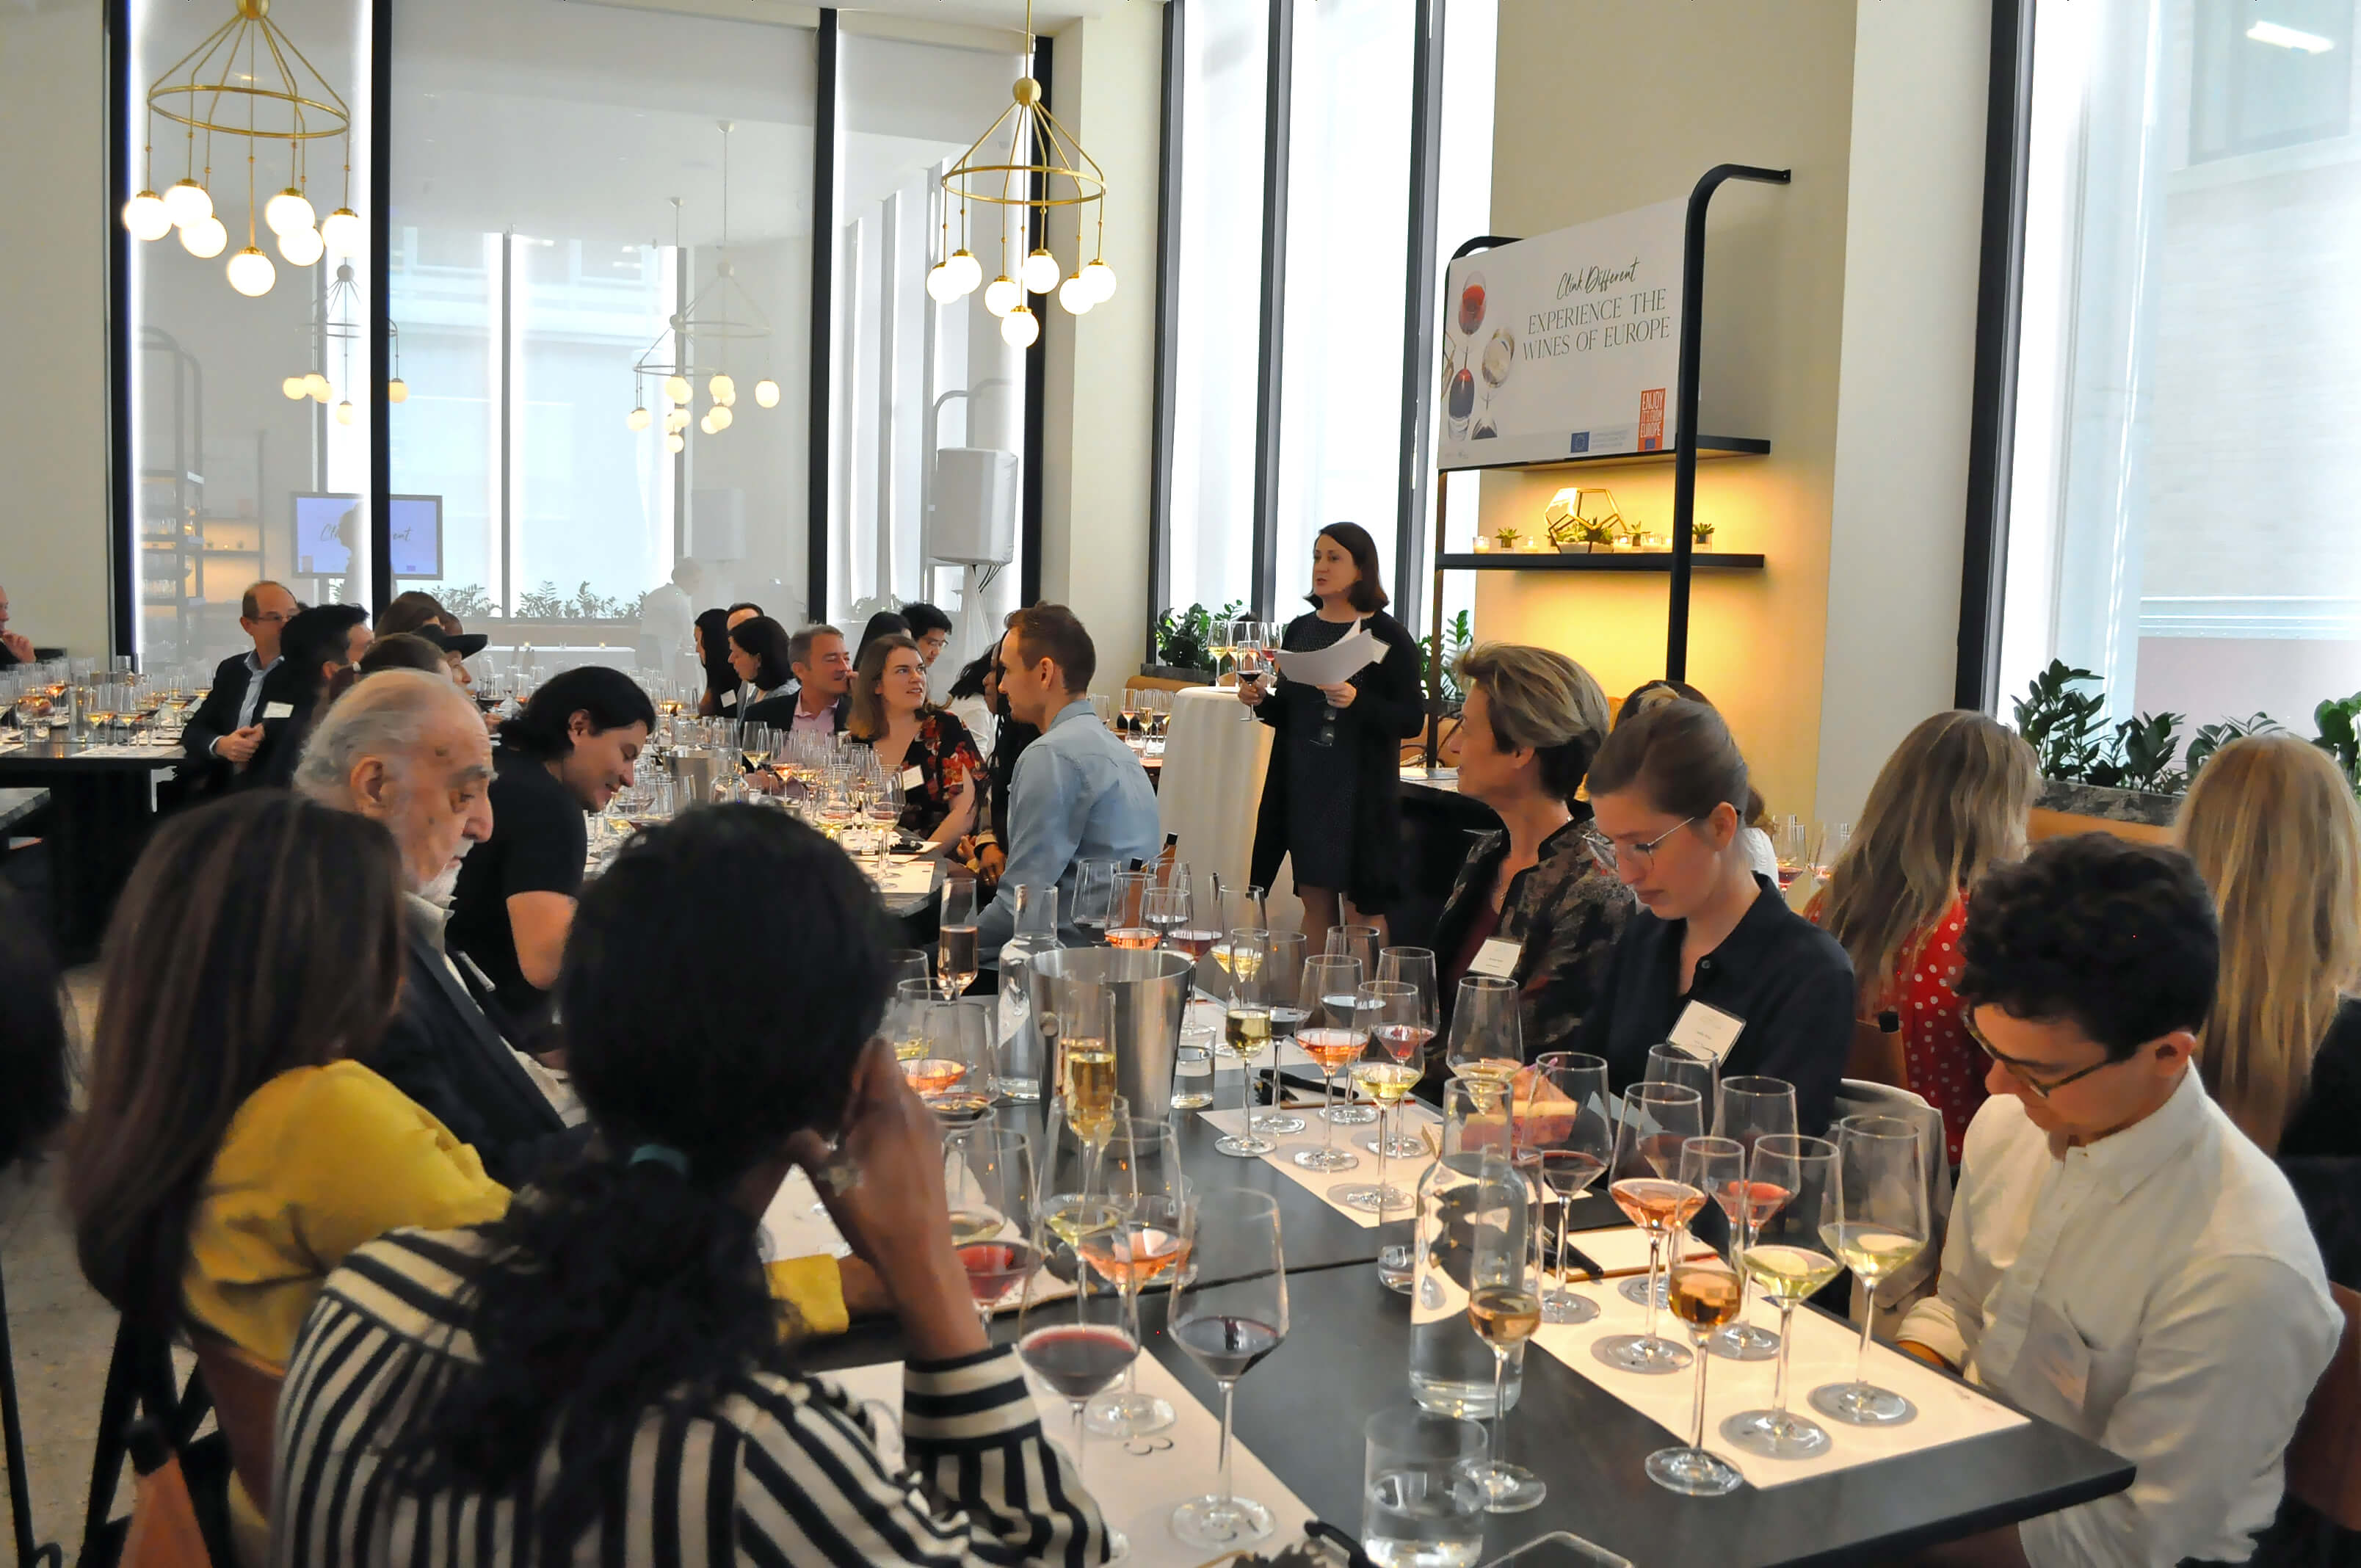 Master of Wine Jean Reilly, Education Director of Clink Different, led attendees through a blind tasting of German and Bordeaux wines